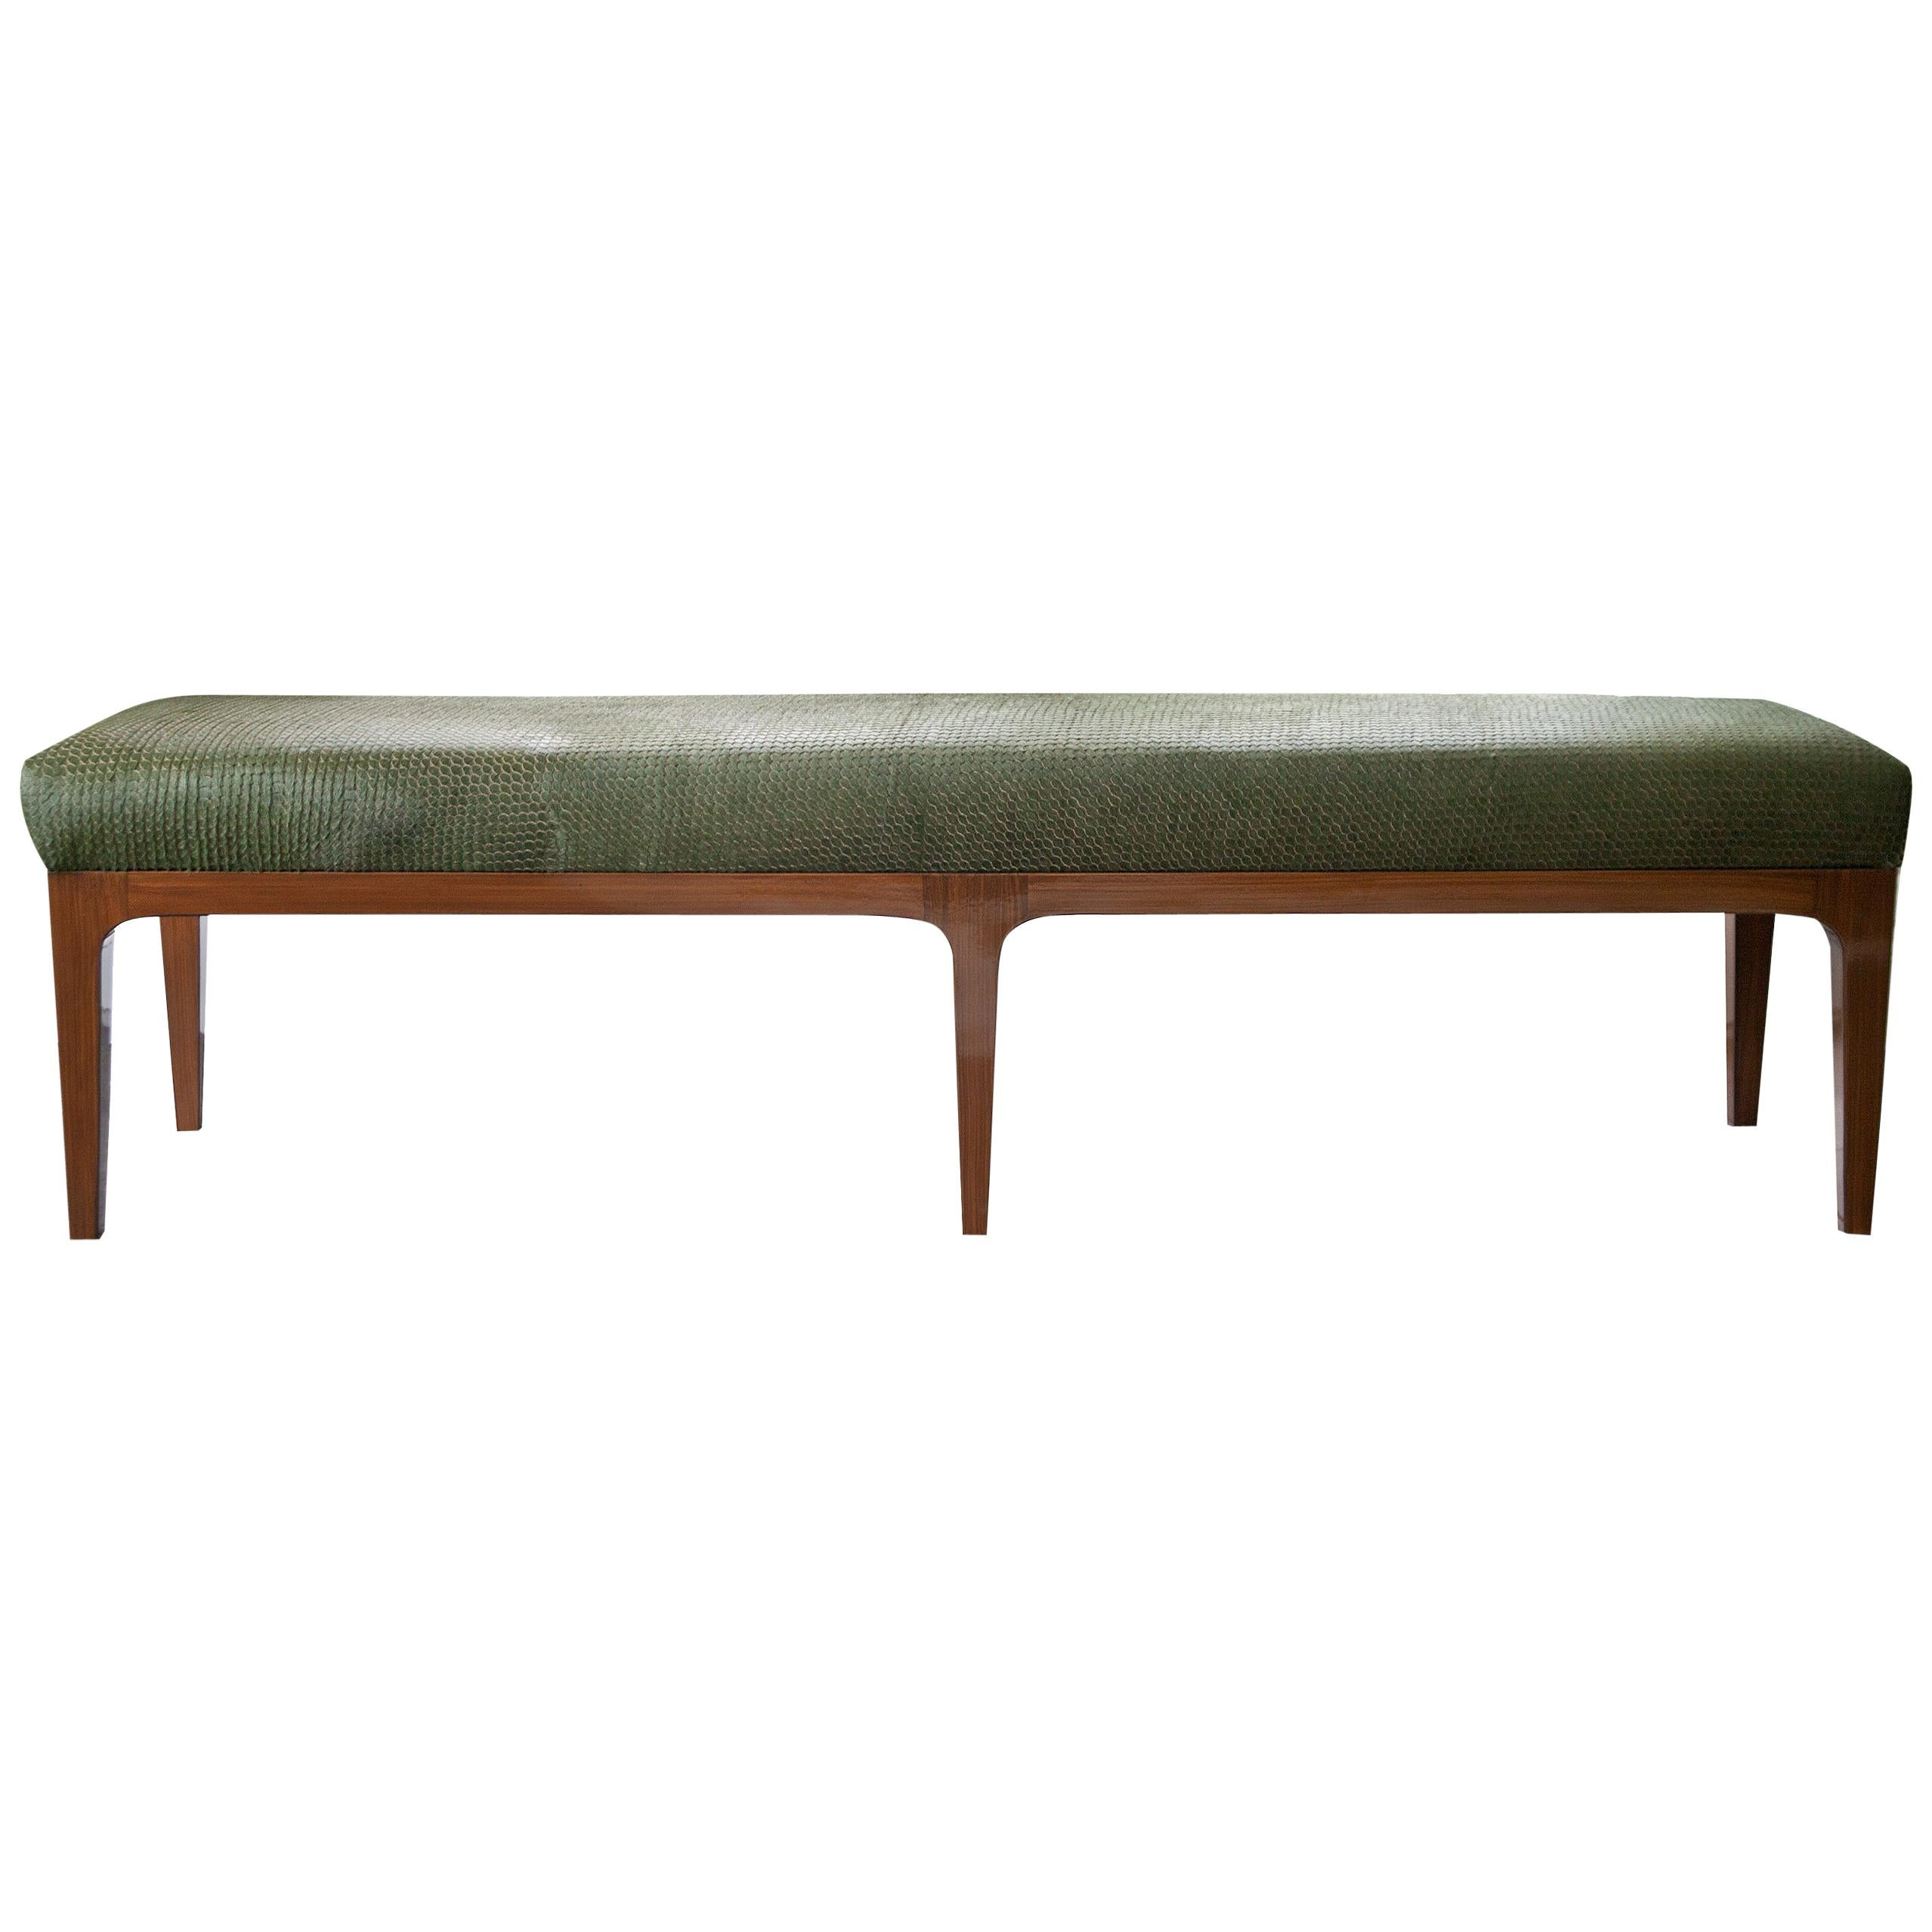 Mid-Century Modern Style Laser Cut Cowhide Hair Upholstered Bench